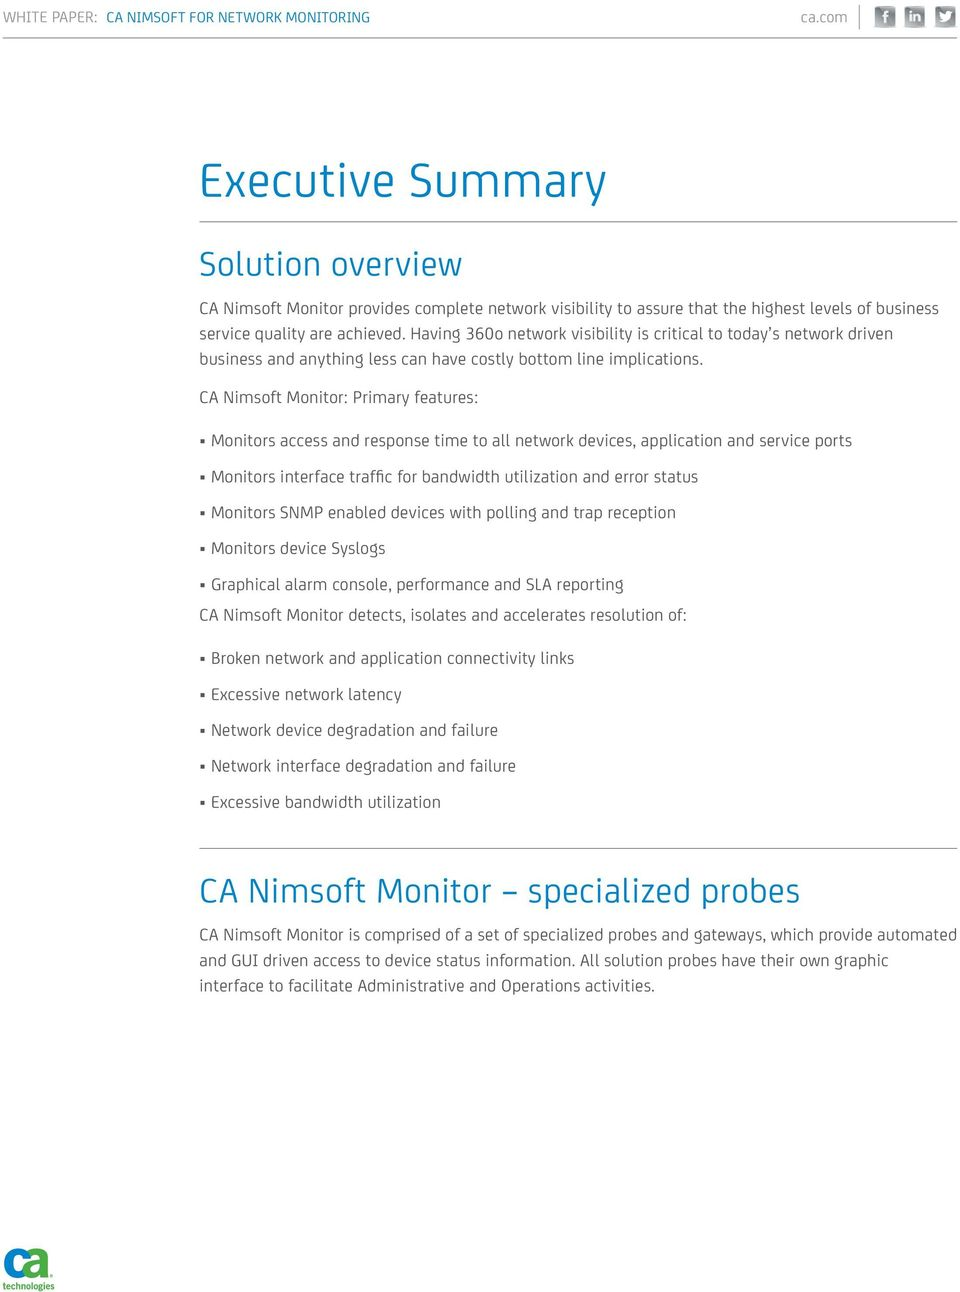 CA Nimsoft Monitor: Primary features: Monitors access and response time to all network devices, application and service ports Monitors interface traffic for bandwidth utilization and error status